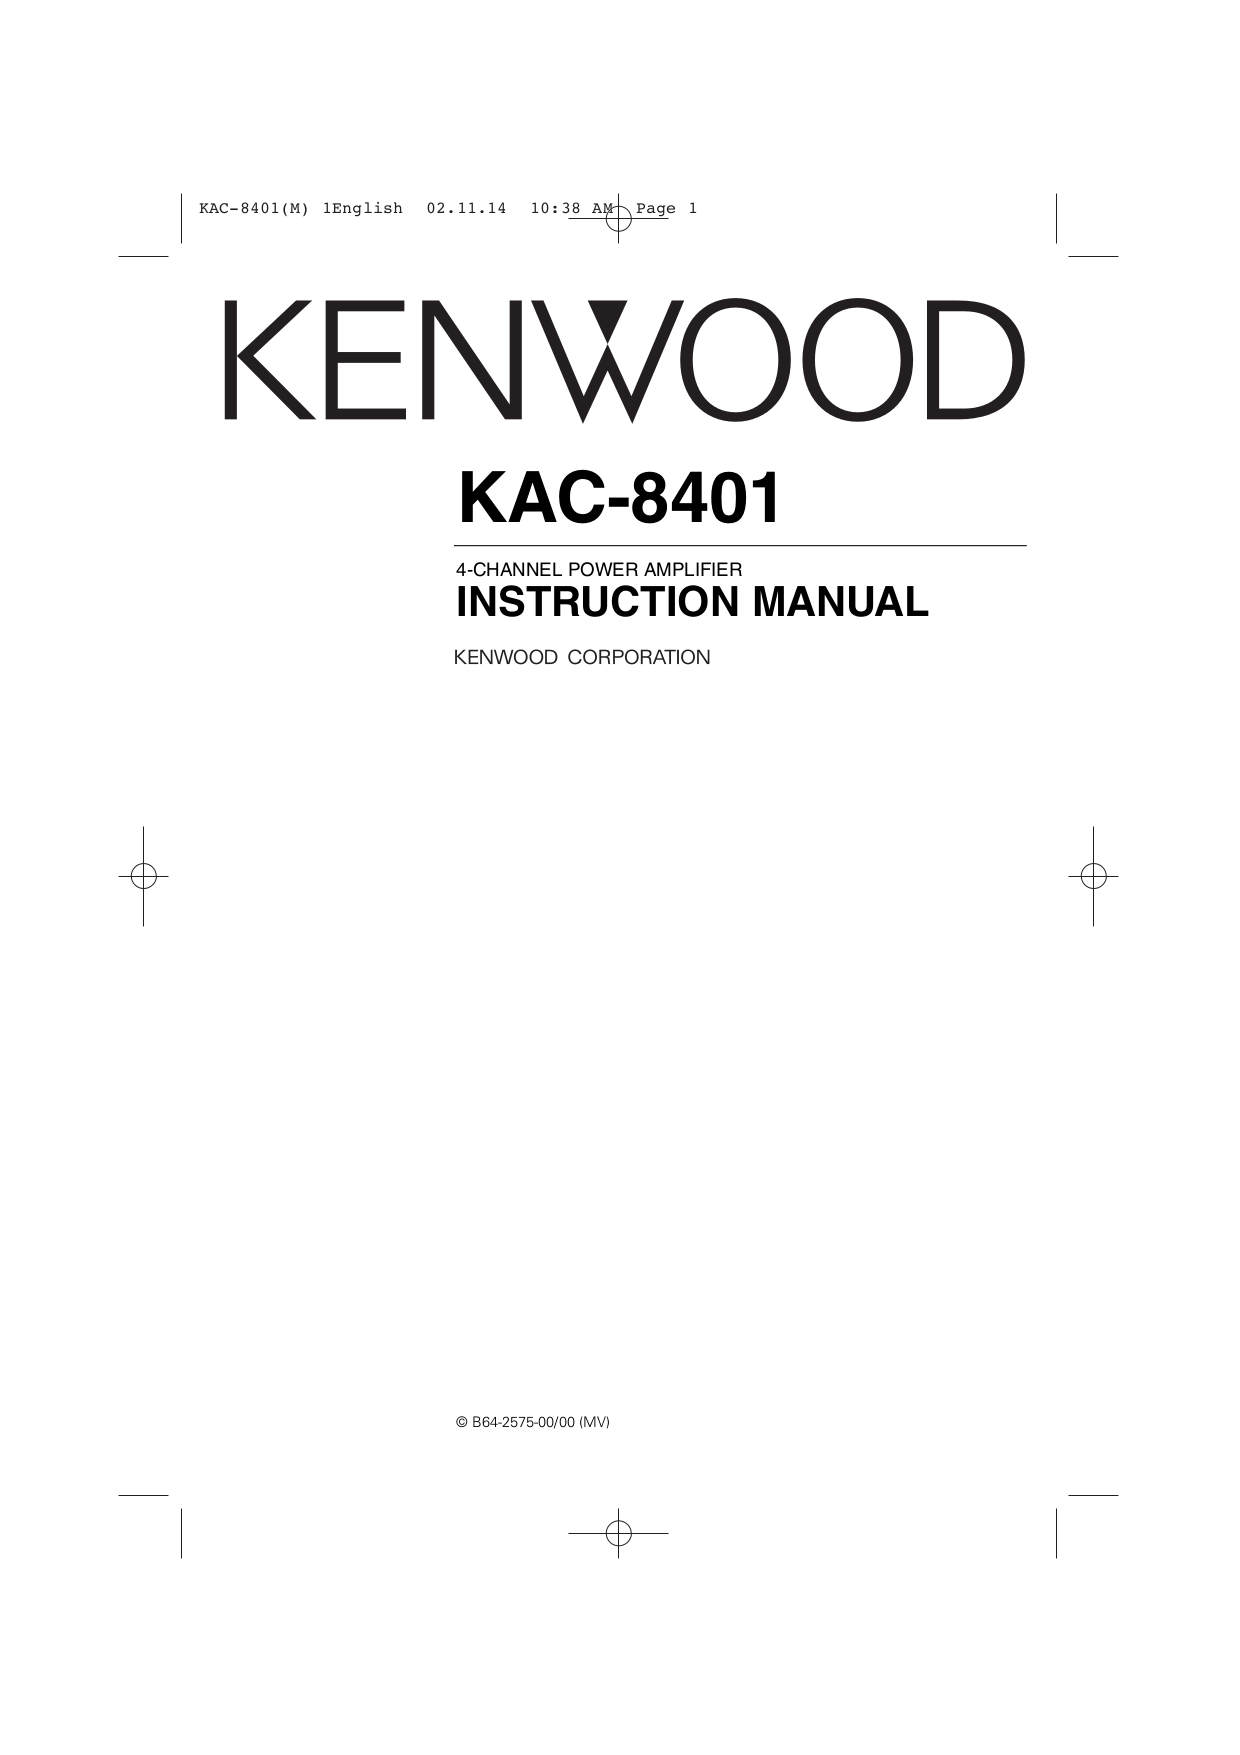 Download free pdf for Kenwood KAC-8401 Car Amplifier manual